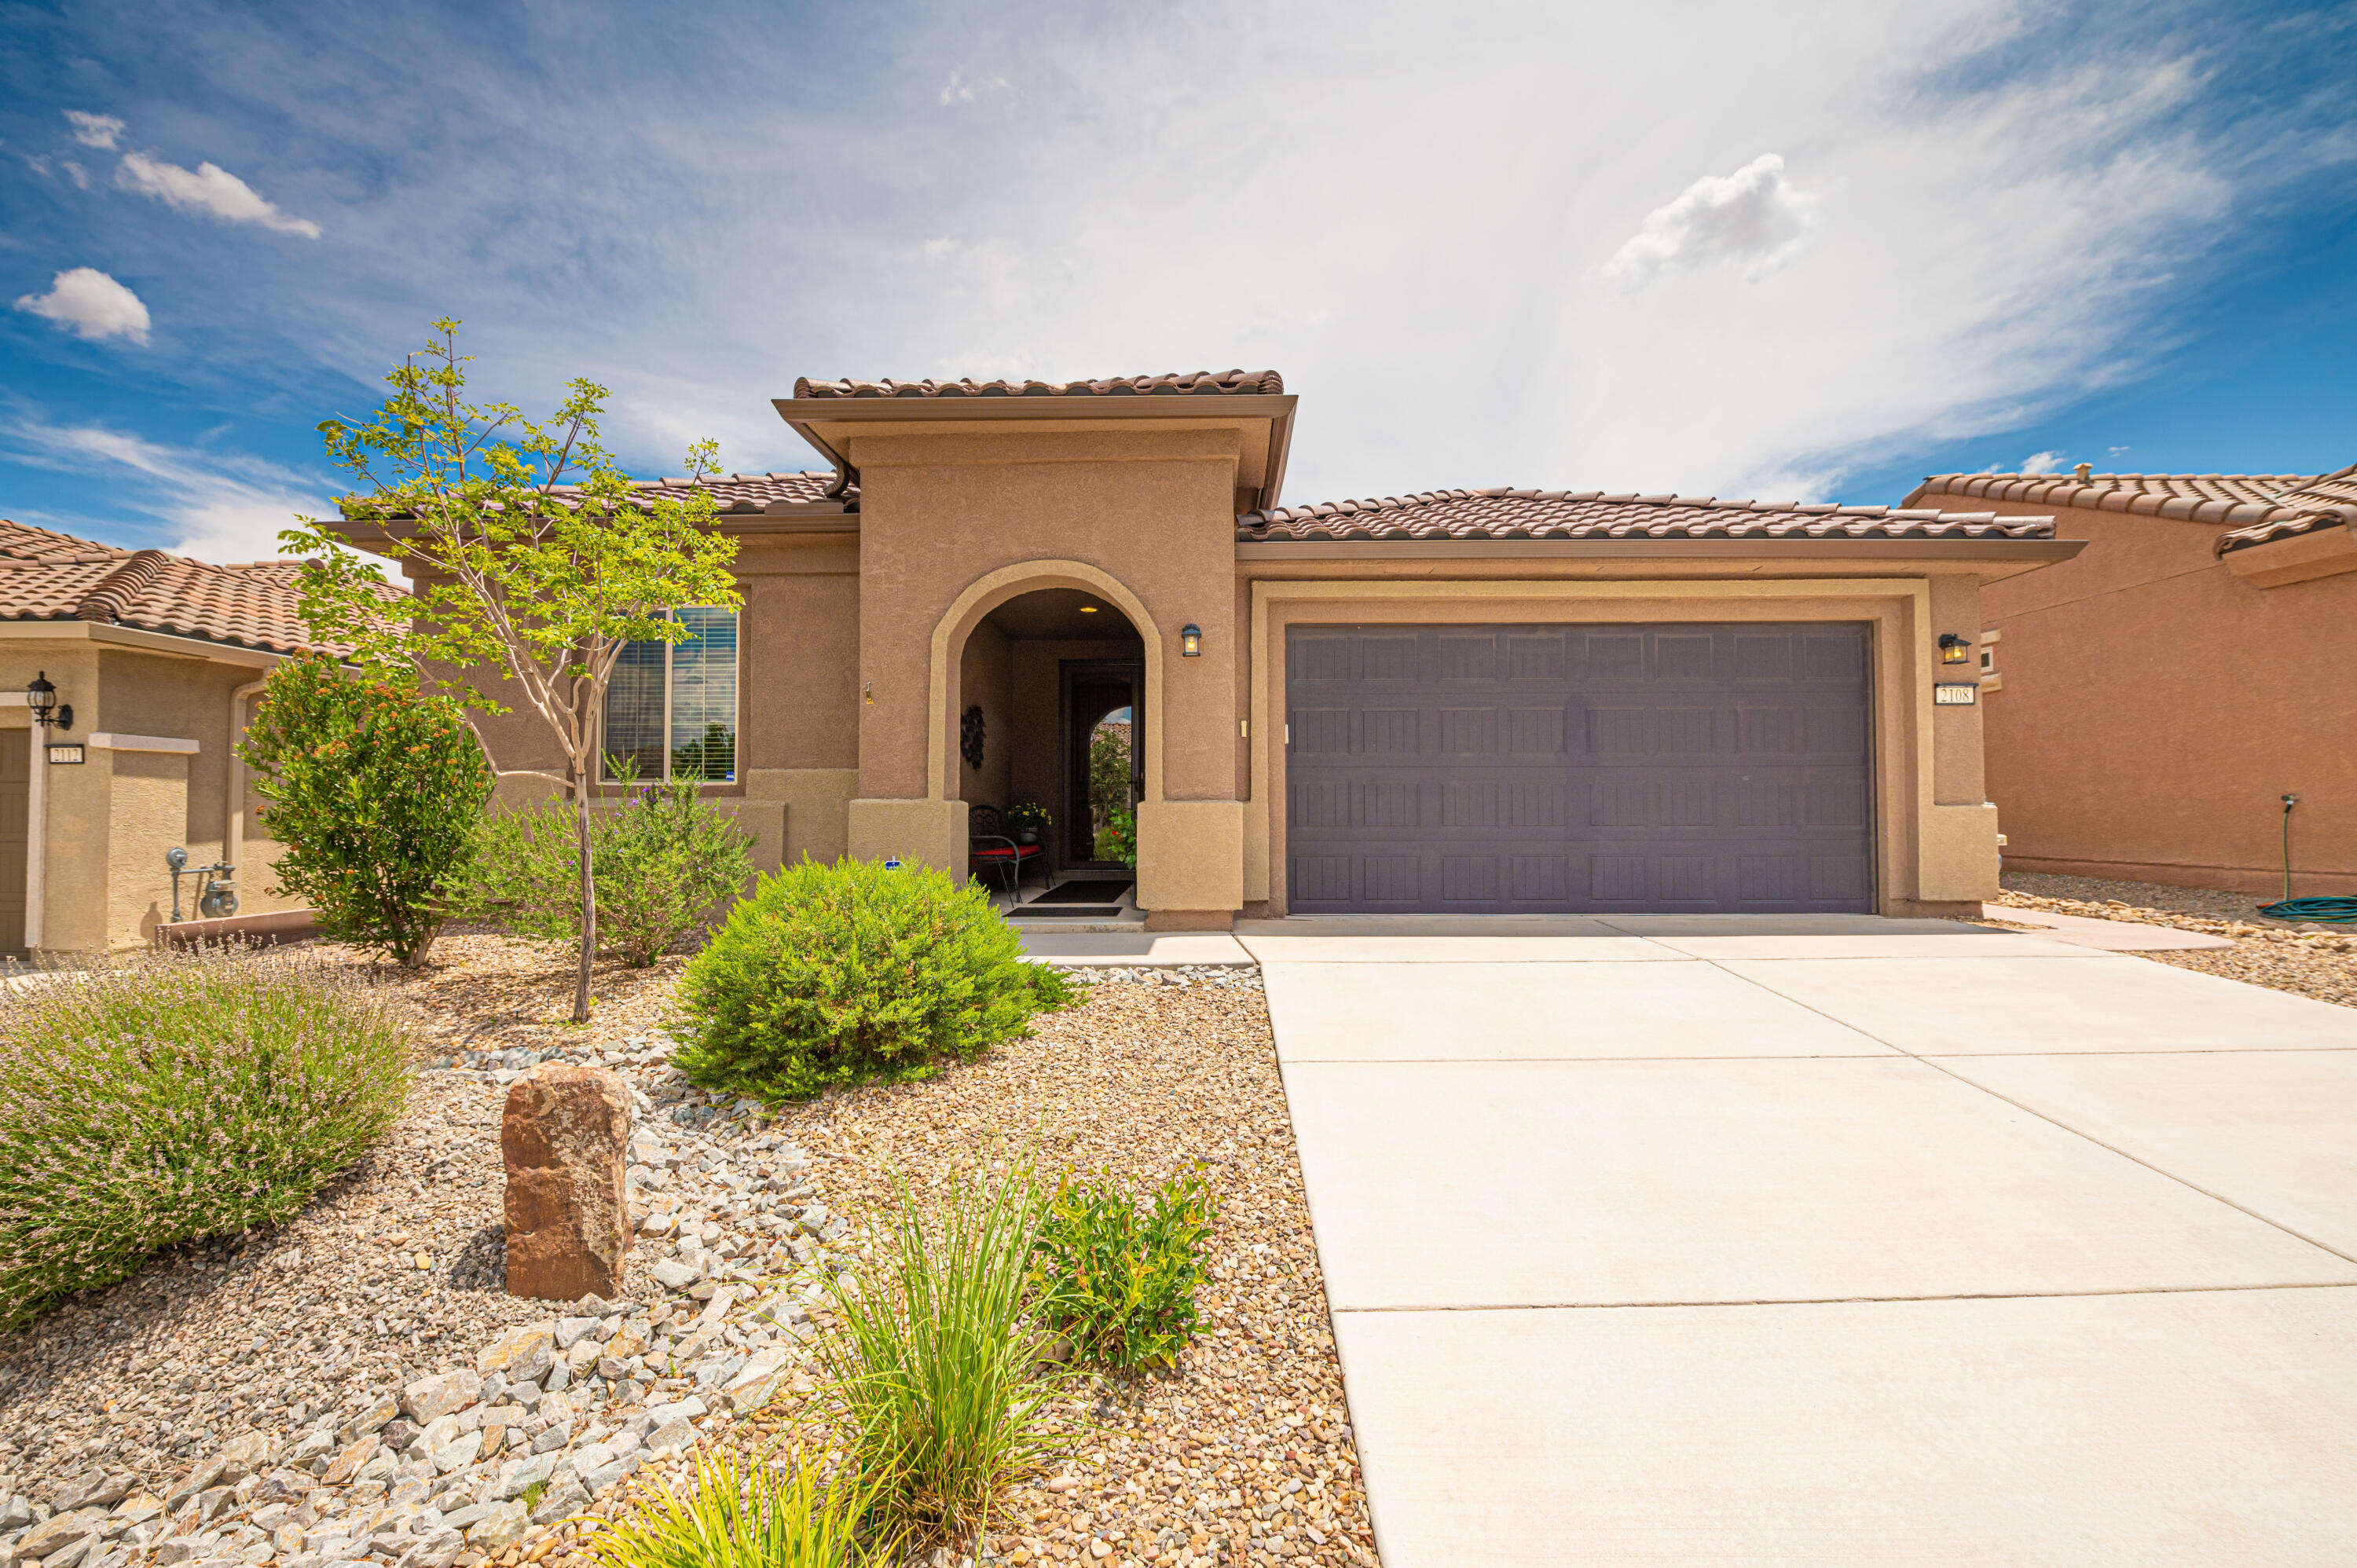 Gorgeous Home built on a Premium View Lot in the Exclusive Del Webb 55+ Community! This 2035 SF 'Preserve' Model home was built in 2017 and has PANORAMIC VIEWS OF THE CITY, SANDIA'S AND MONZANO MOUNTAINS!! Views are from the kitchen, dining, living room, master suite, back patio/yard and will never be obstructed!! Home has 2 BR's plus an office w/French Doors, a beautiful kitchen open to Great Room, large island, gorgeous Quartz Counter-tops, large pantry, gas cook-top, SS appliances, Gas Log FP, Dining Room!! 2 Car Garage has 4FT Extension, Epoxy Floor & extra storage space!! Expanded Laundry Room w/Mud Sink, Nice Barn Door too & W/D stay!  The BEAUTIFUL custom backyard has an outdoor kitchen (can be removed or easily moved), GAS FP! Enjoy Tennis, Pickle Ball, Salt Water Pool, Gym, etc!!